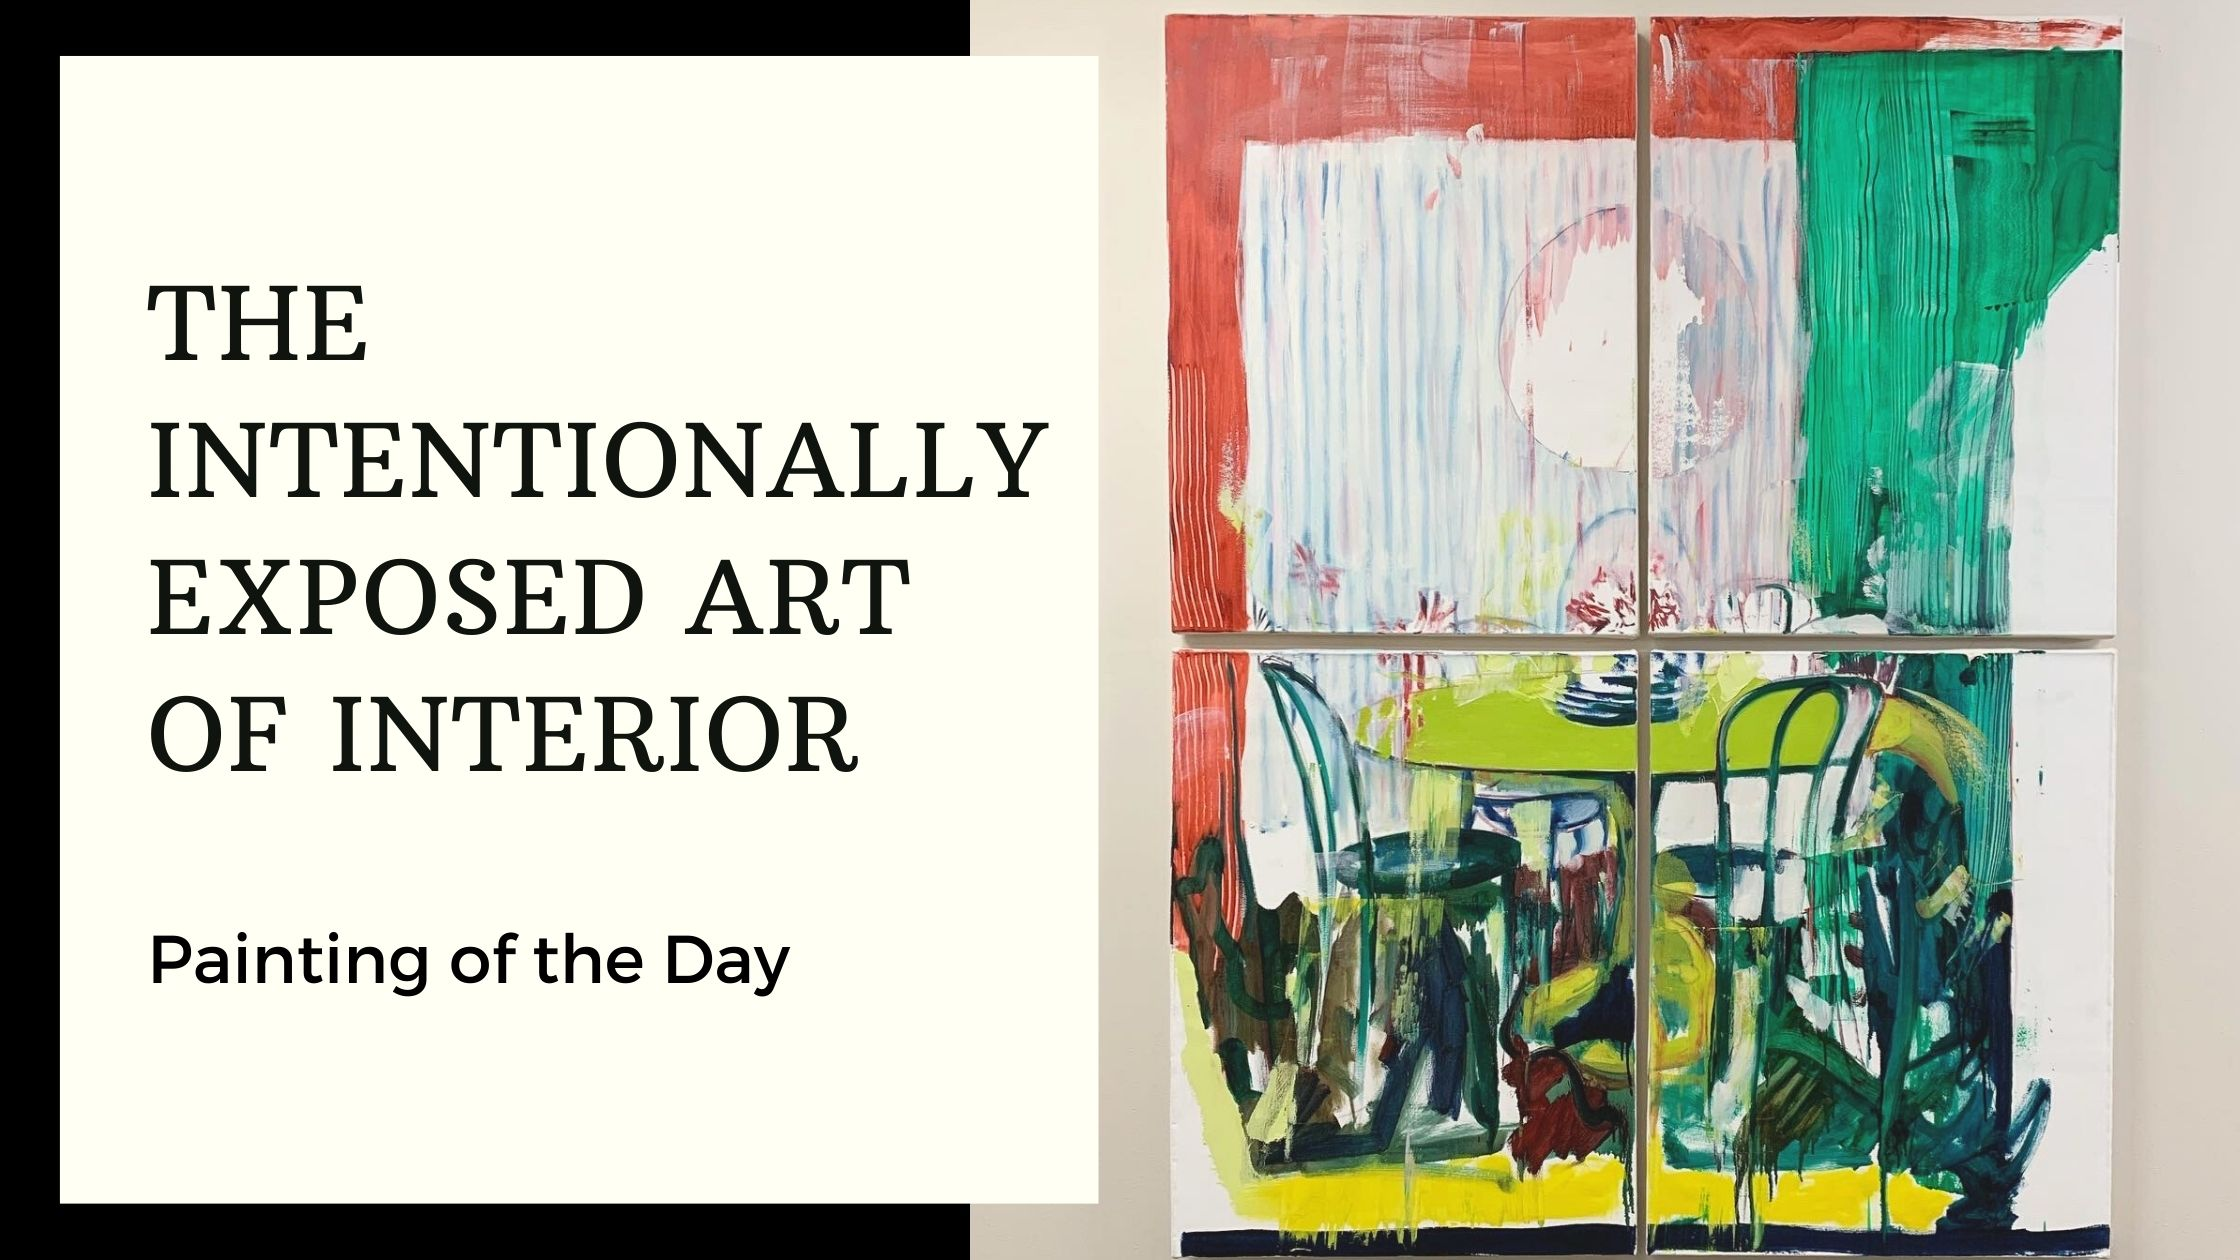 The Intentionally Exposed Art of Interior